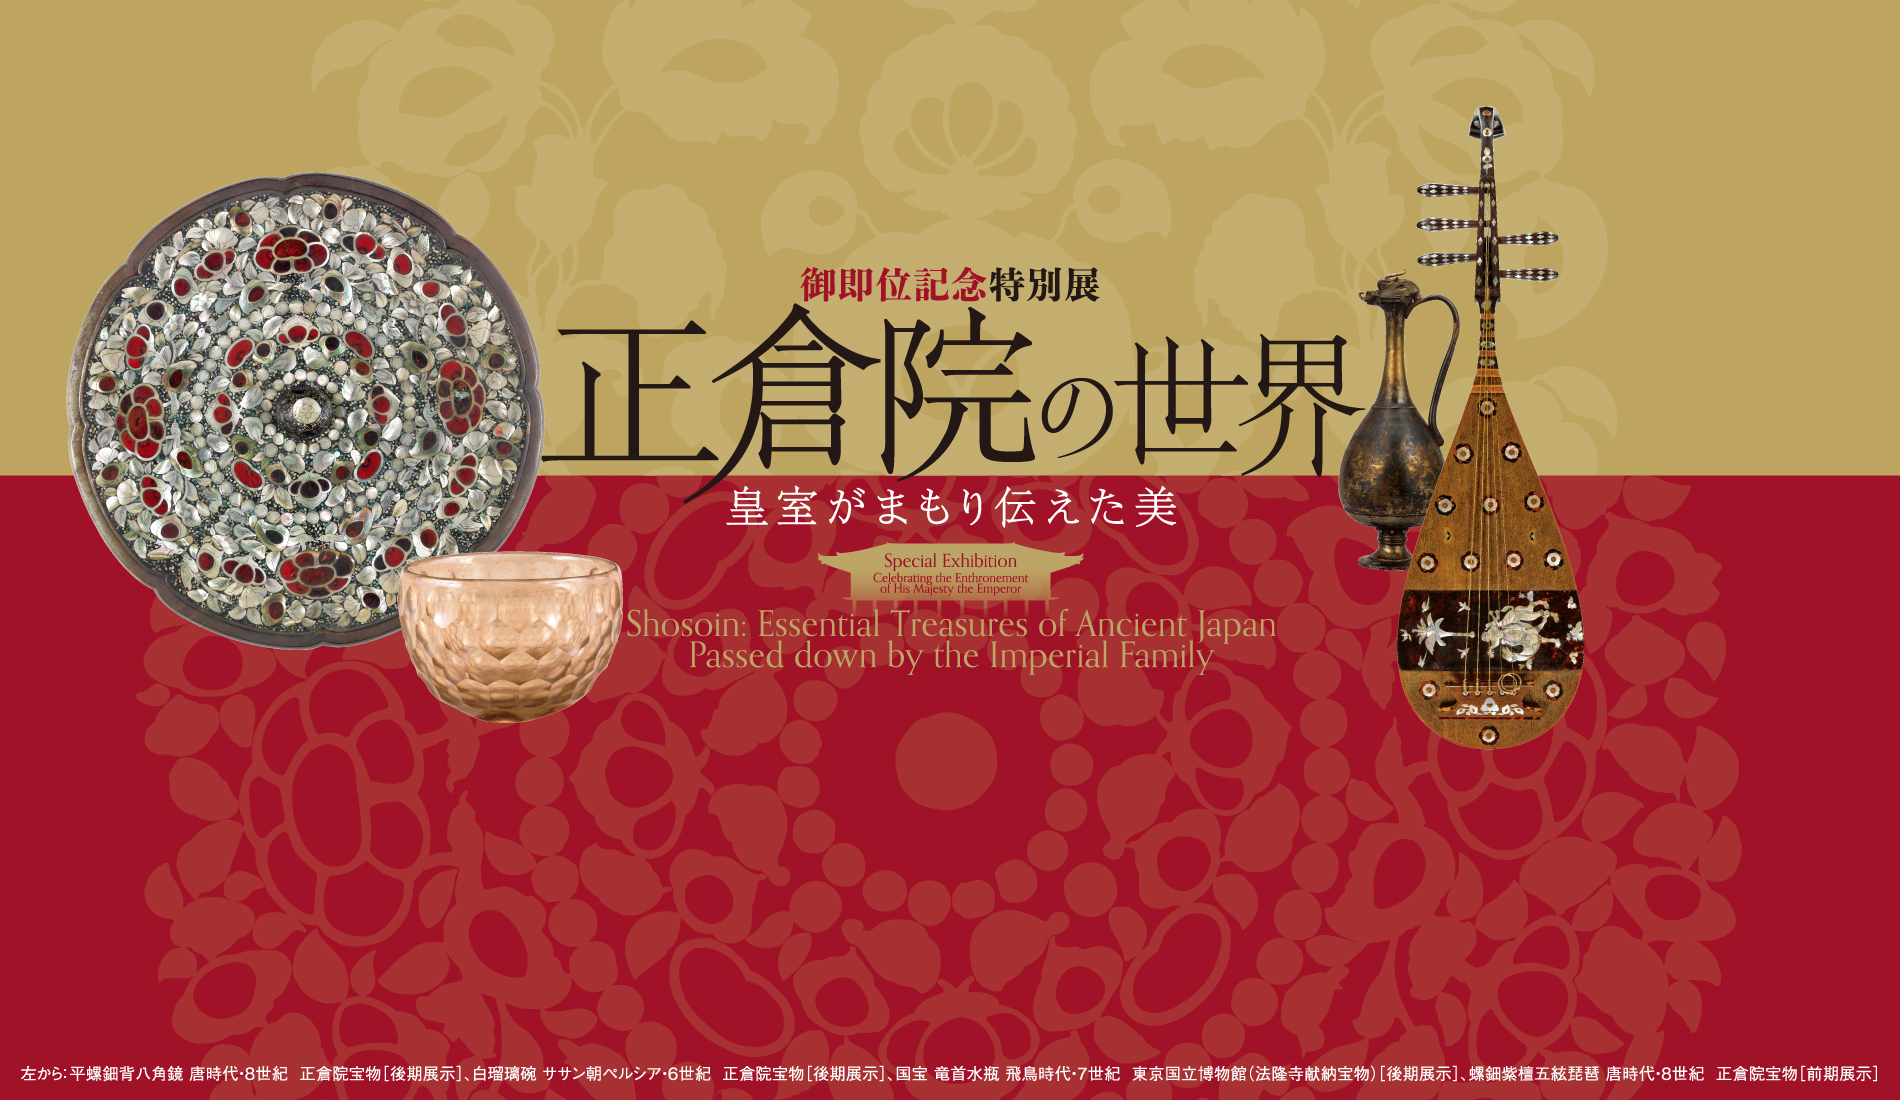 Celebrating the Enthronement of His Majesty the Emperor Shosoin: Essential Treasures of Ancient Japan Passed Down by the Imperial Family